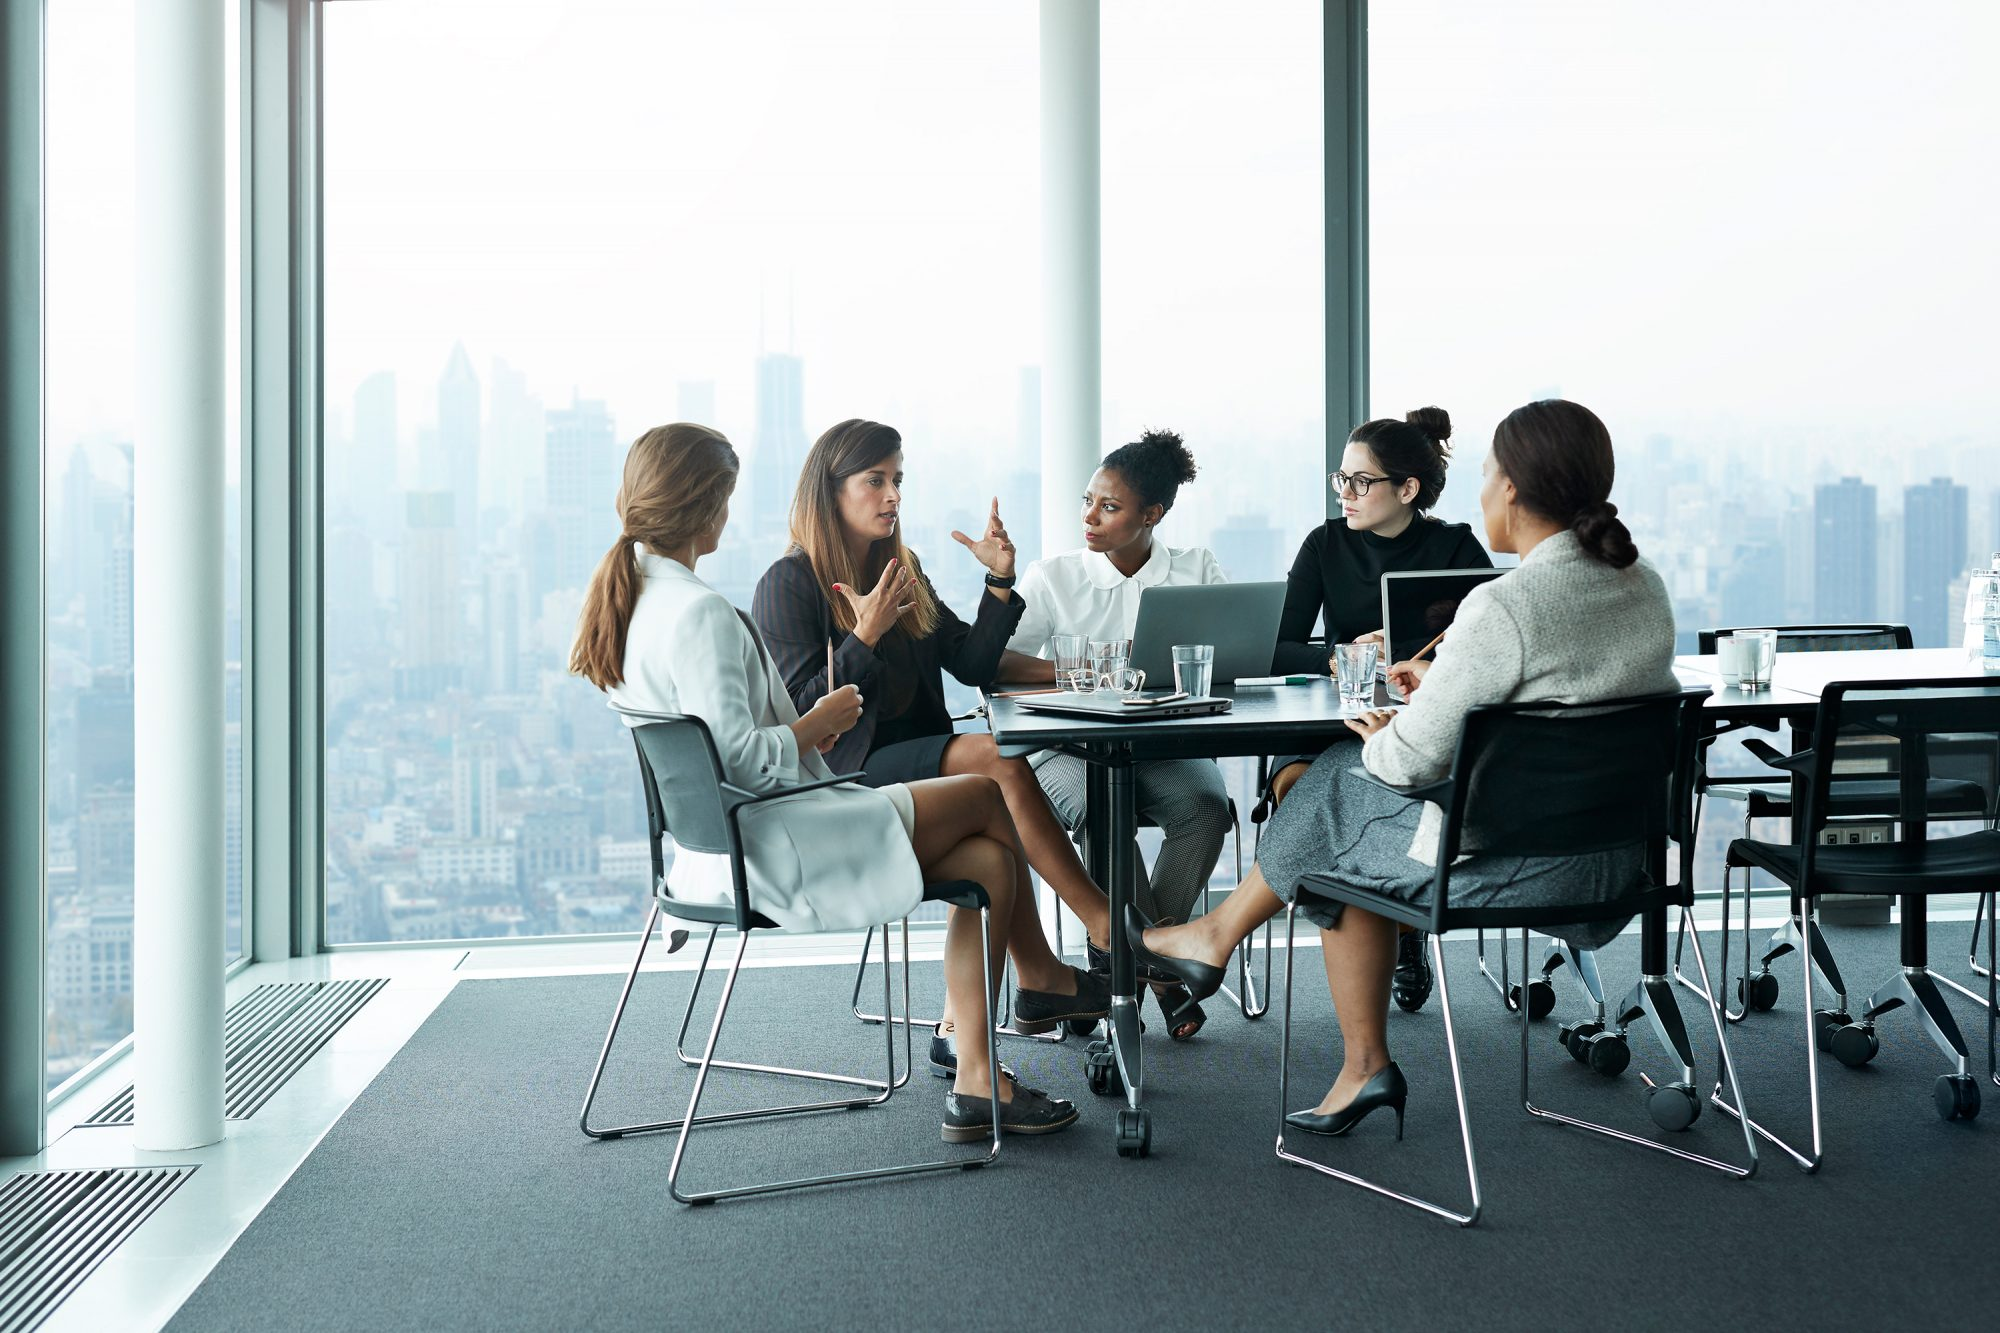 Women Having a Meeting at Work